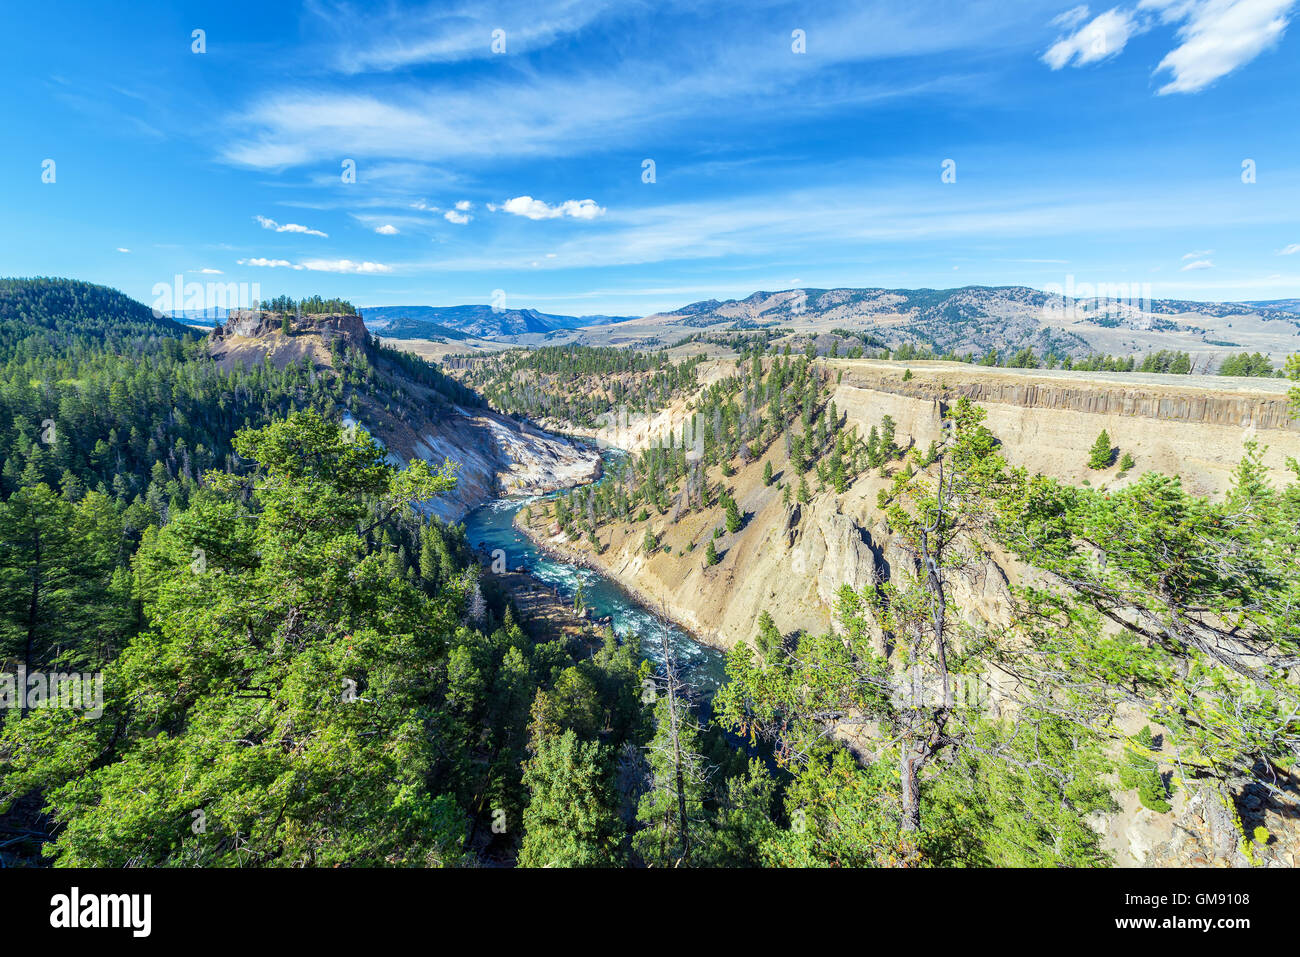 Landscape view of a canyon and the Yellowstone River near Tower Fall in Yellowstone National Park - Stock Image